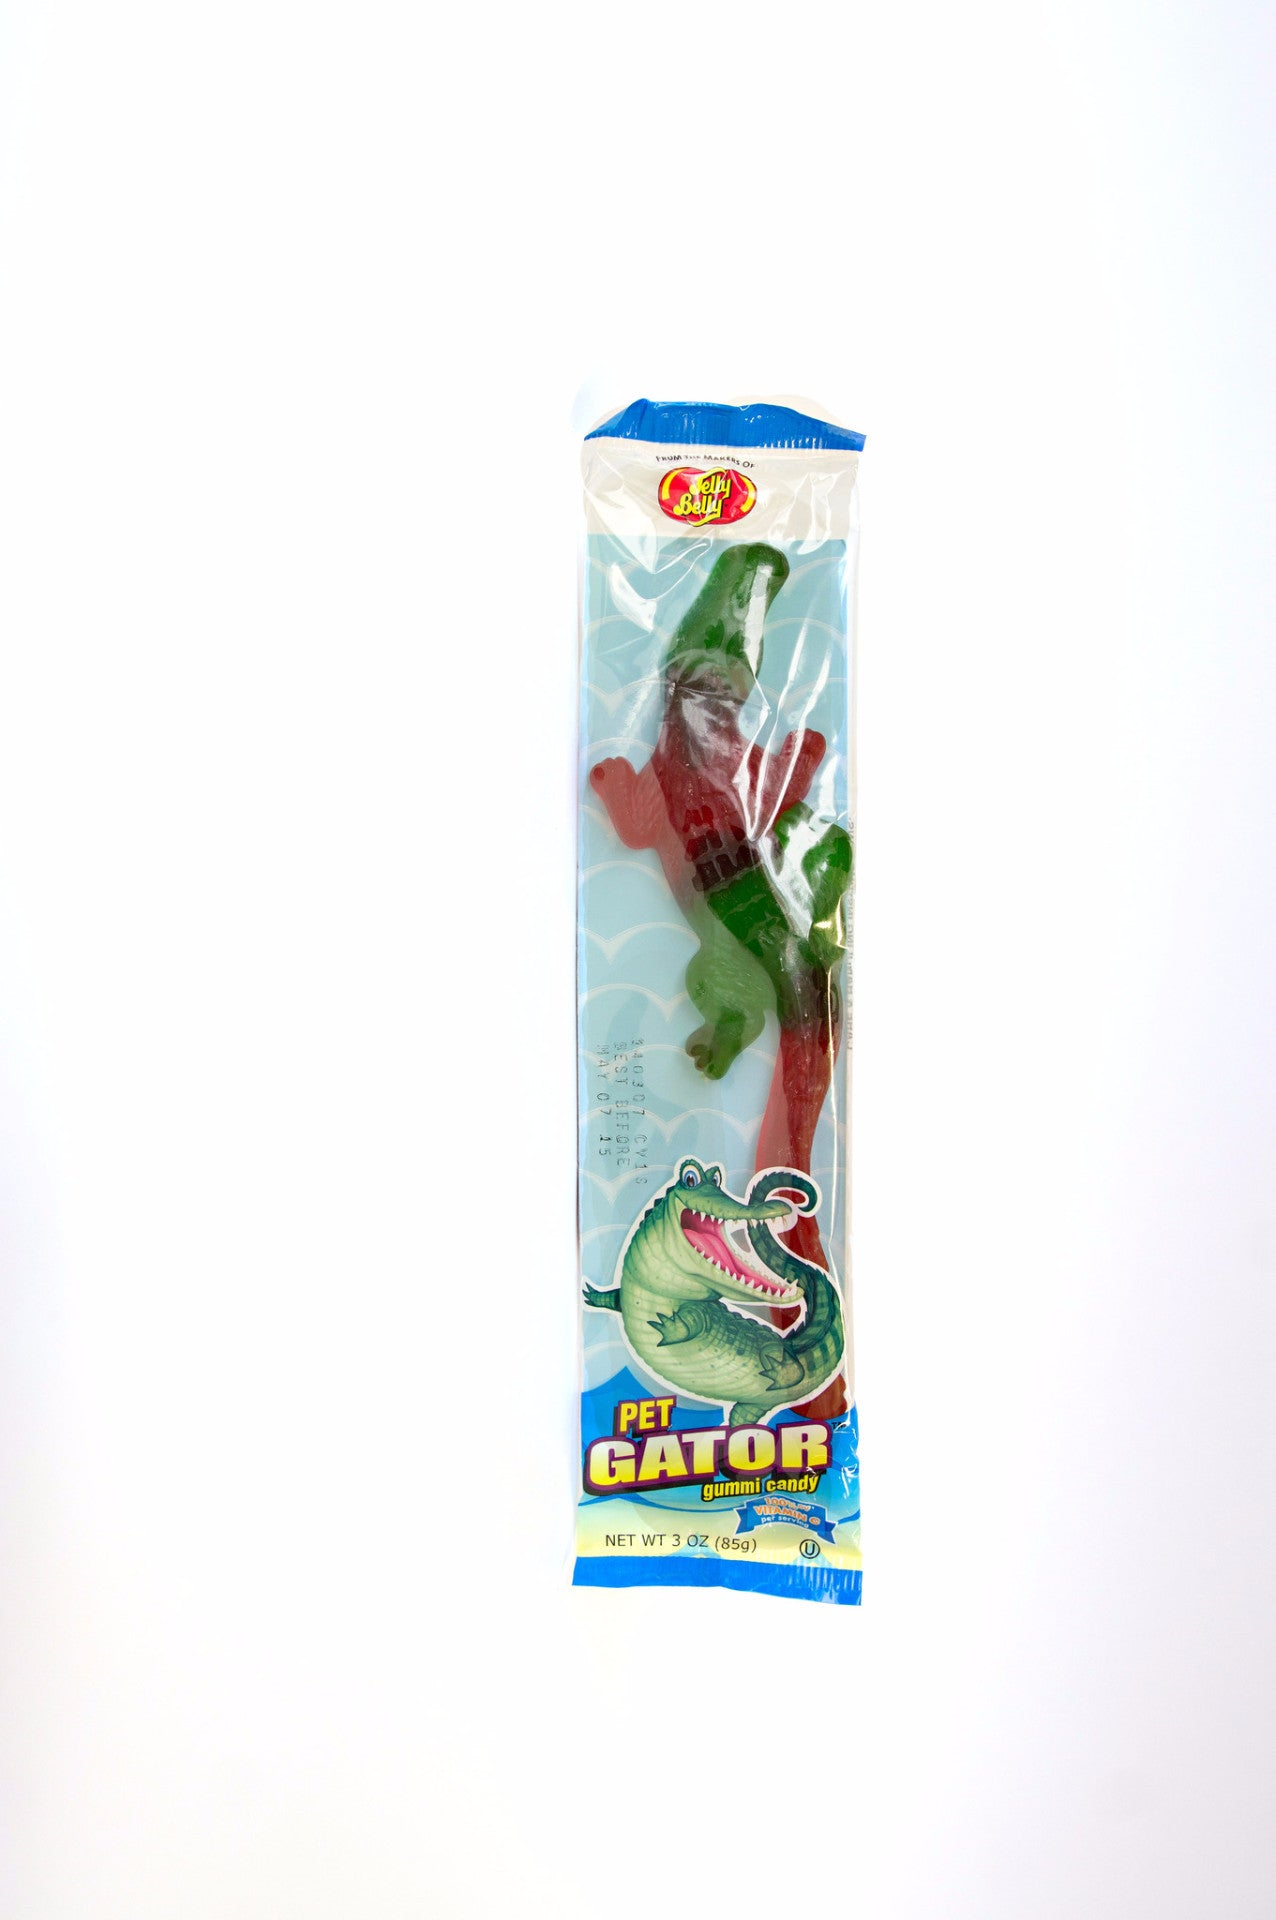 Jelly Belly Pet Gator